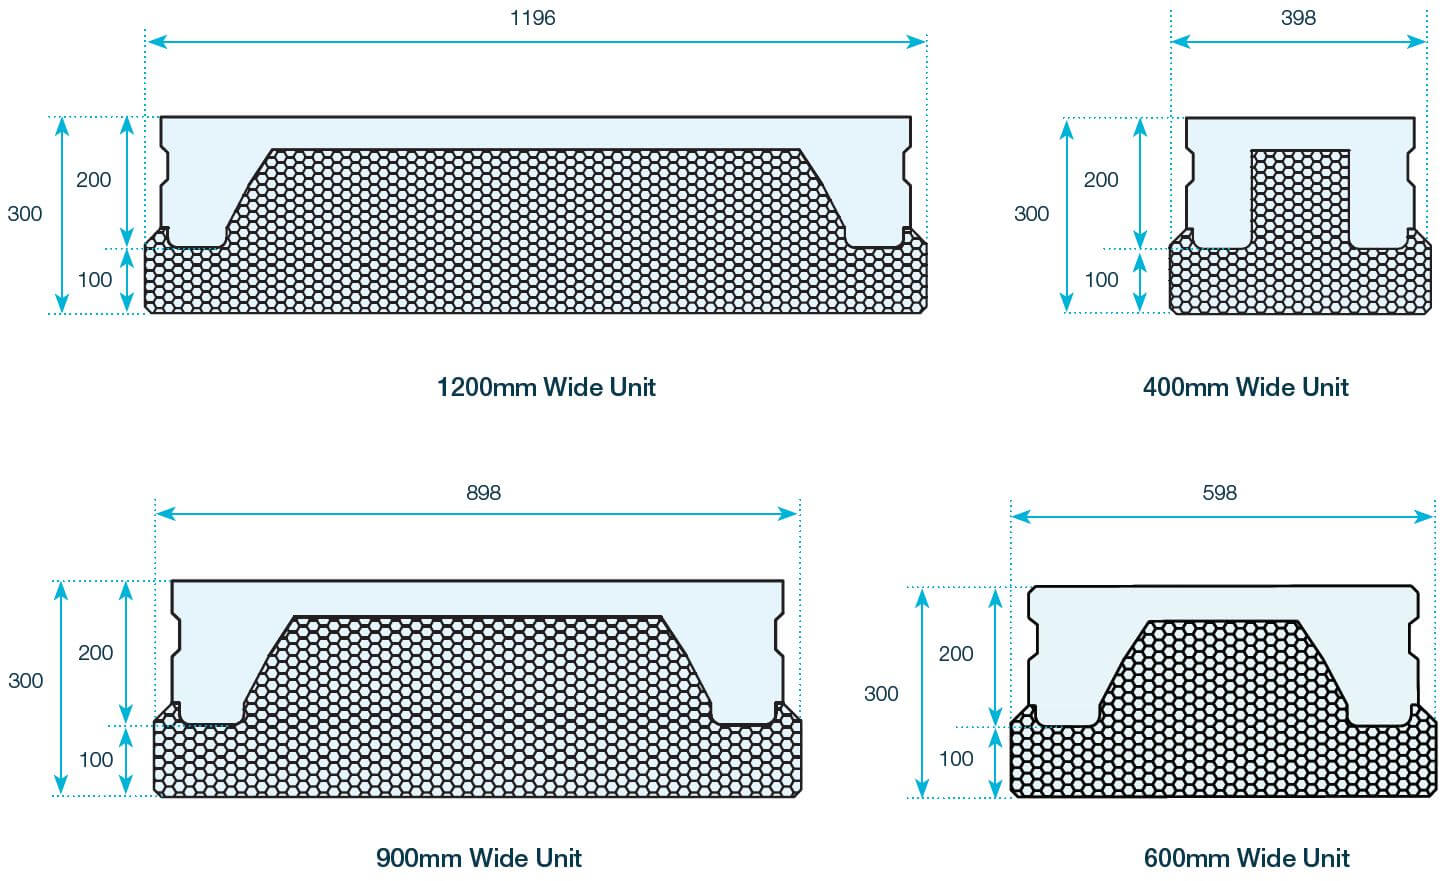 FP-McCann-precast-concrete-thermabeam-300mm-thermabeam-unit-diagram-300mm-600mm-900mm-1200mm-widths